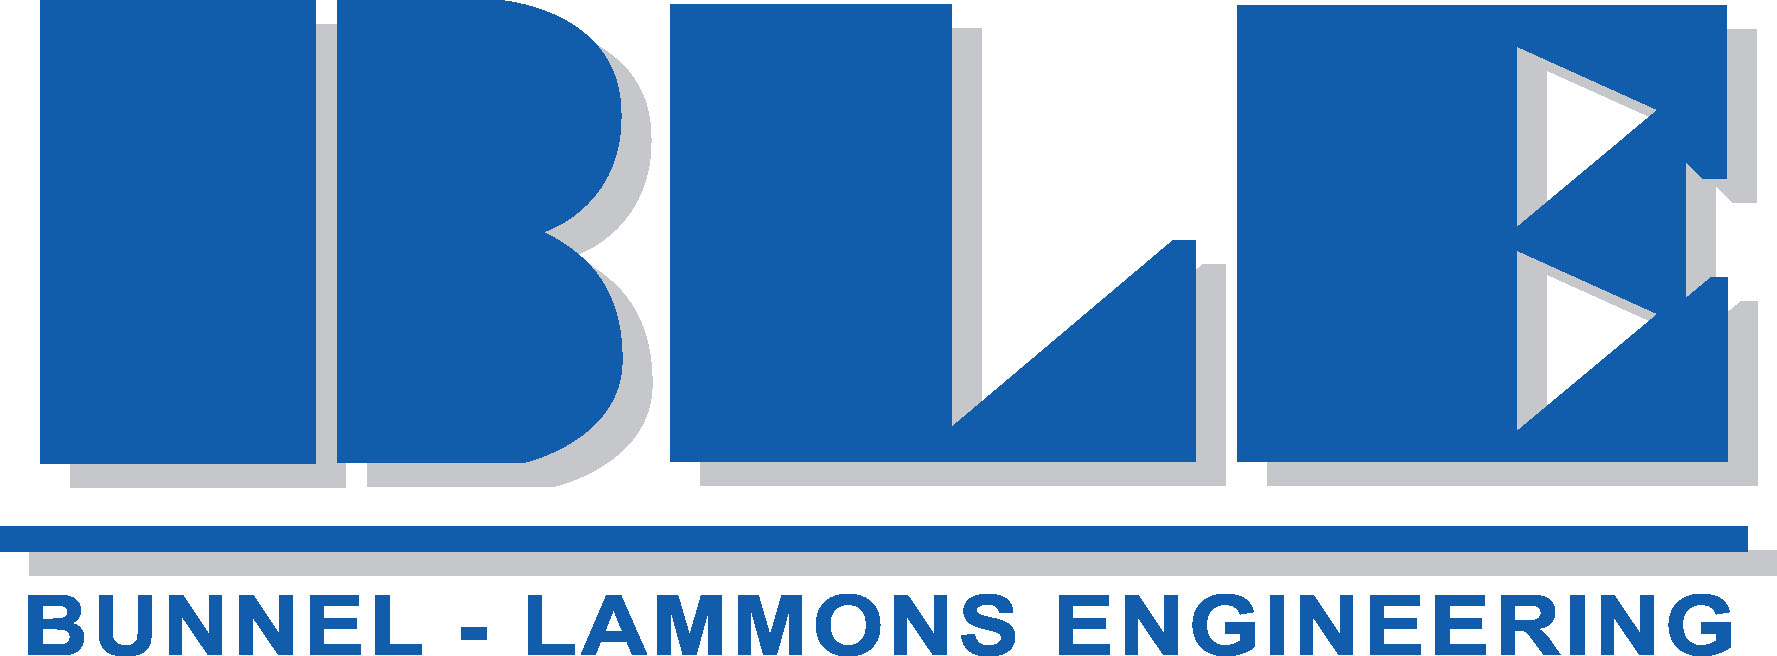 Bunnell-Lammons Engineering, Inc. $5000 sponsorship